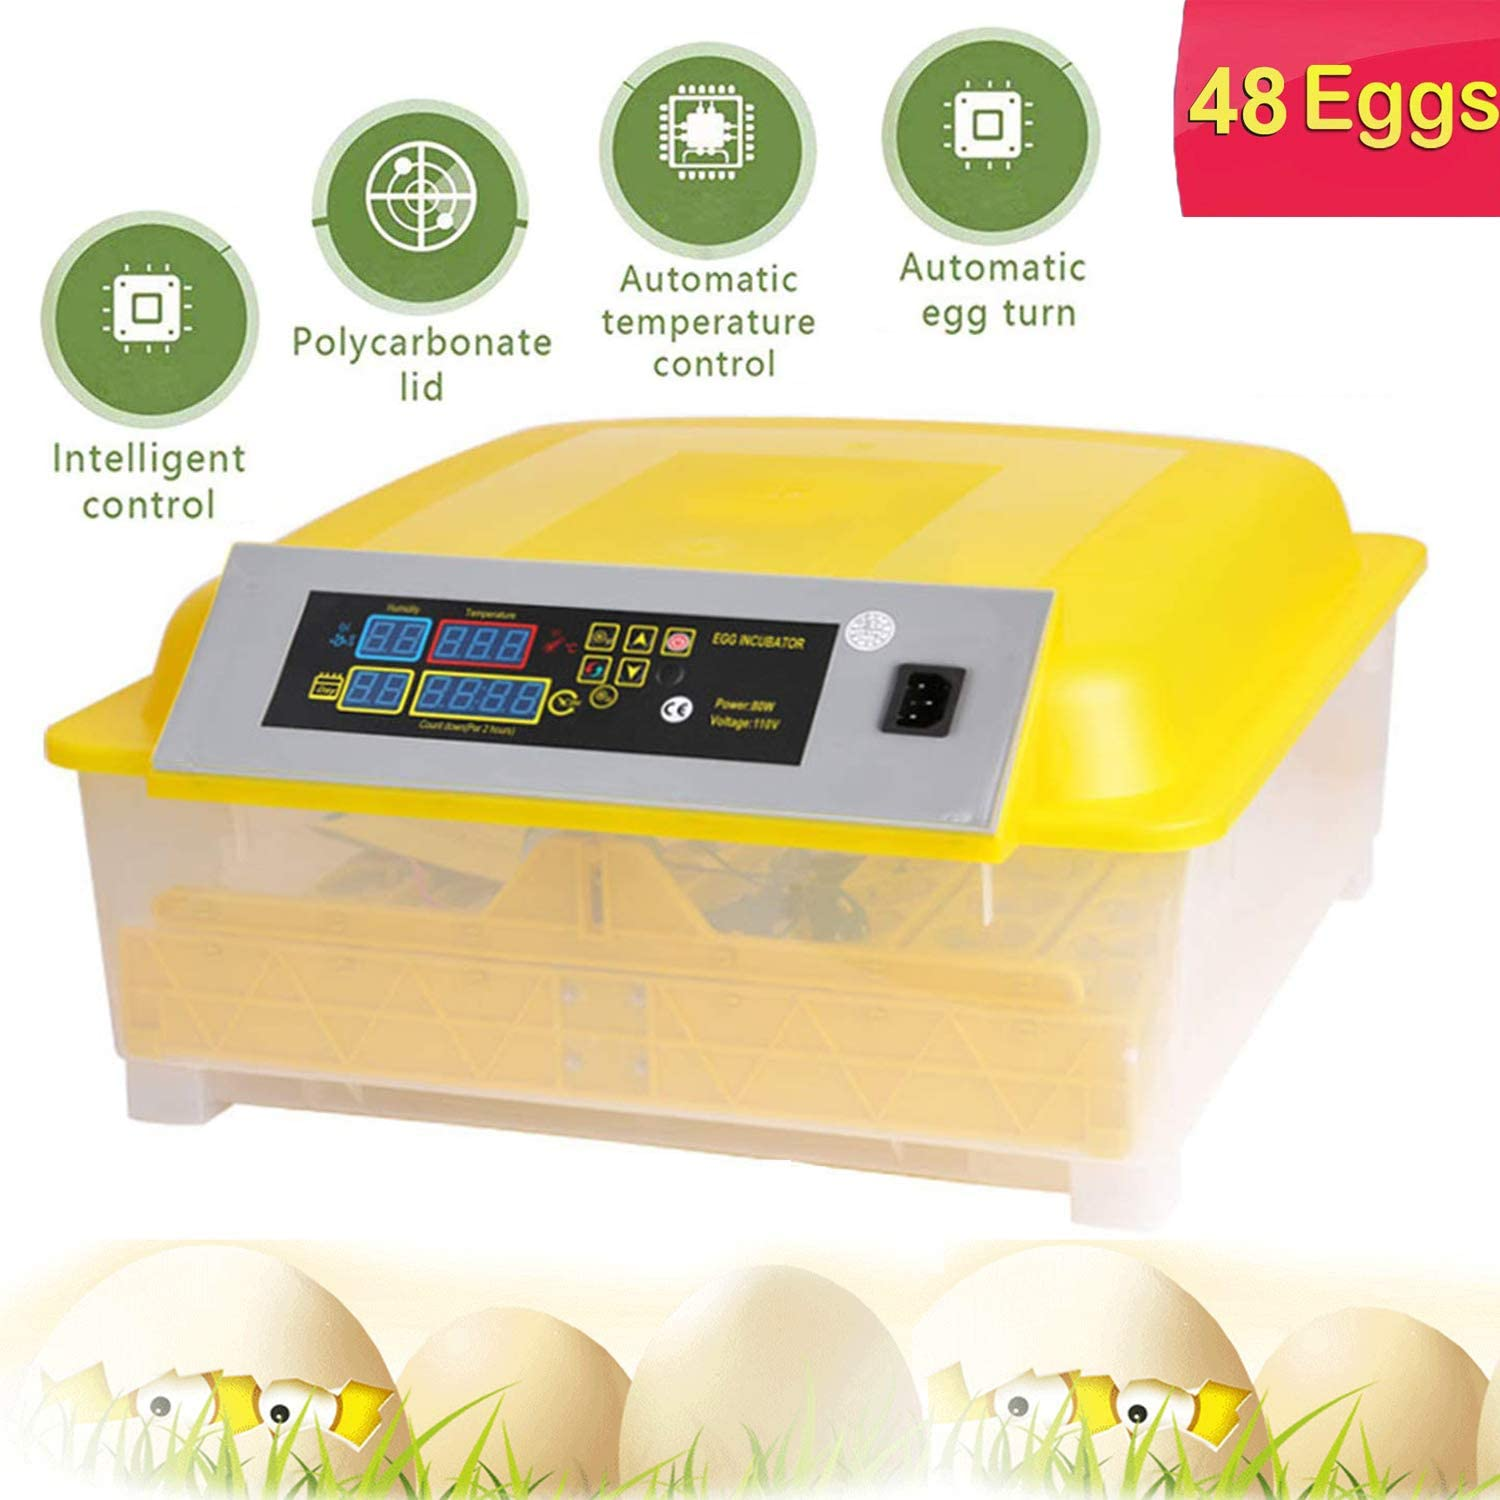 OppsDecor 56 Egg Incubator with Automatic Egg Turning Digital Clear Hatching Chickens Duck Birds Eggs Thermometer Temperature Control 90W 56 Egg